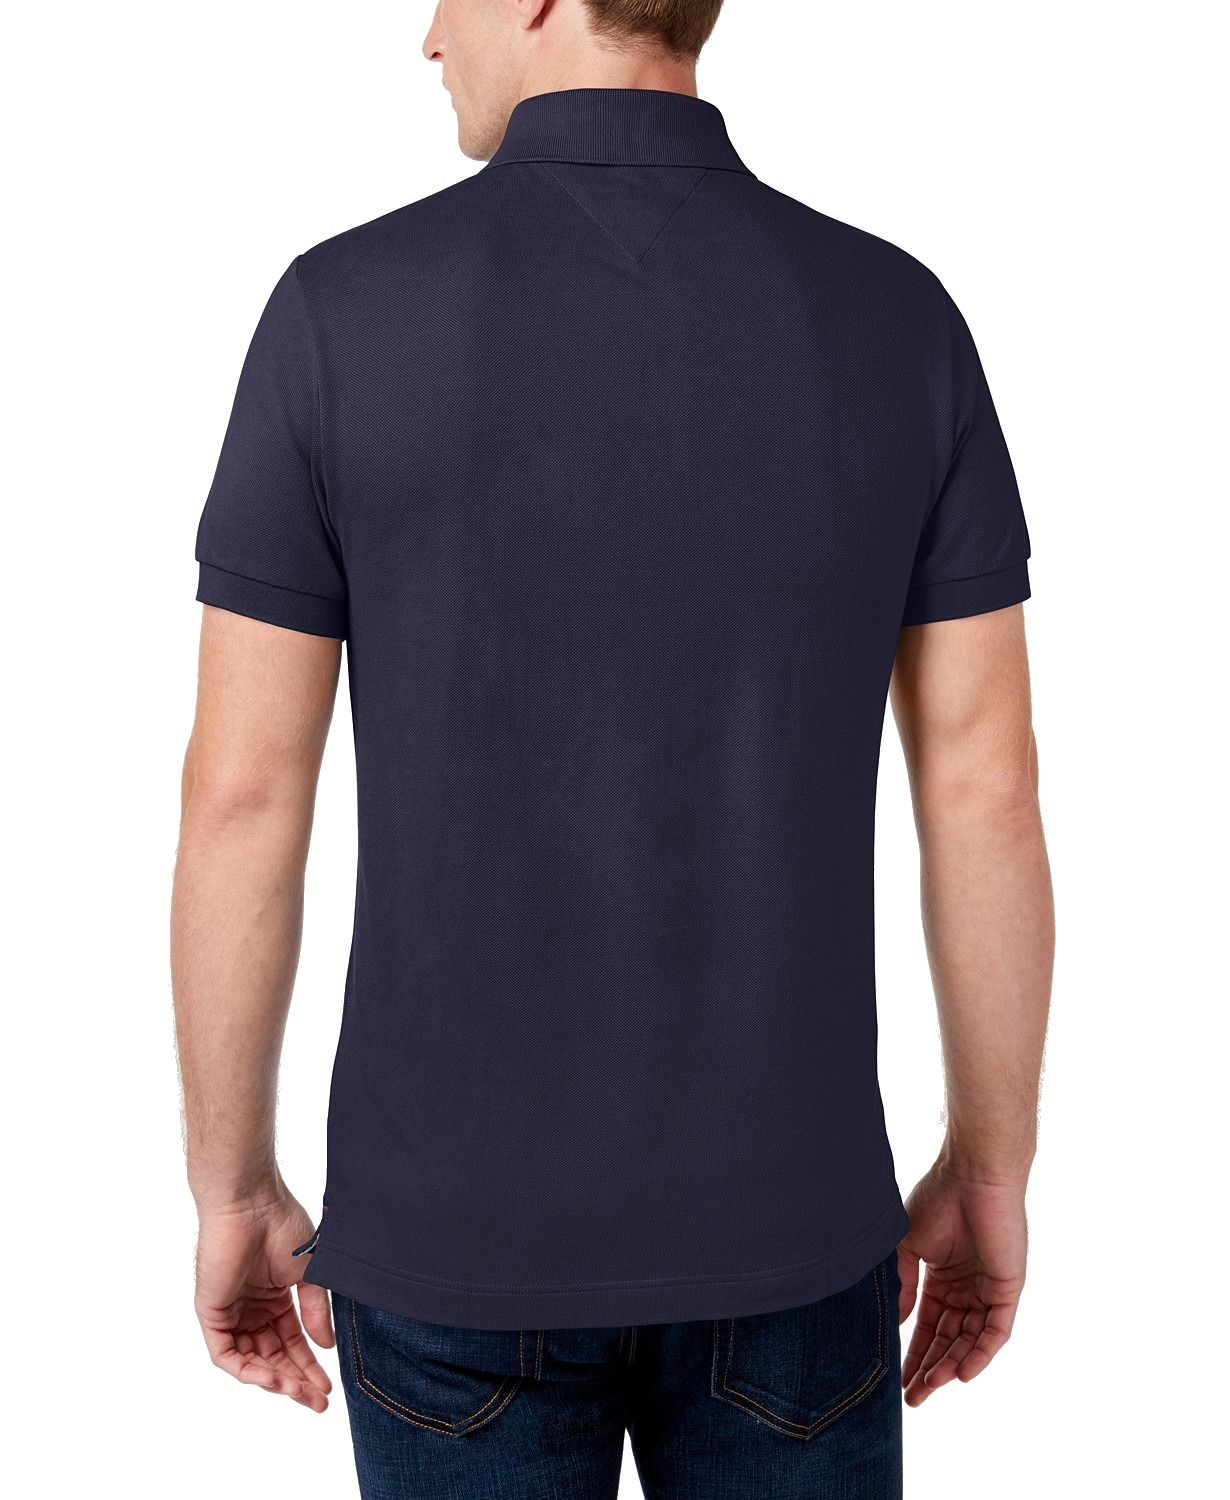 Tommy-Hilfiger-NEW-Custom-Fit-Men-039-s-Solid-Short-Sleeve-Pique-Polo-Shirt